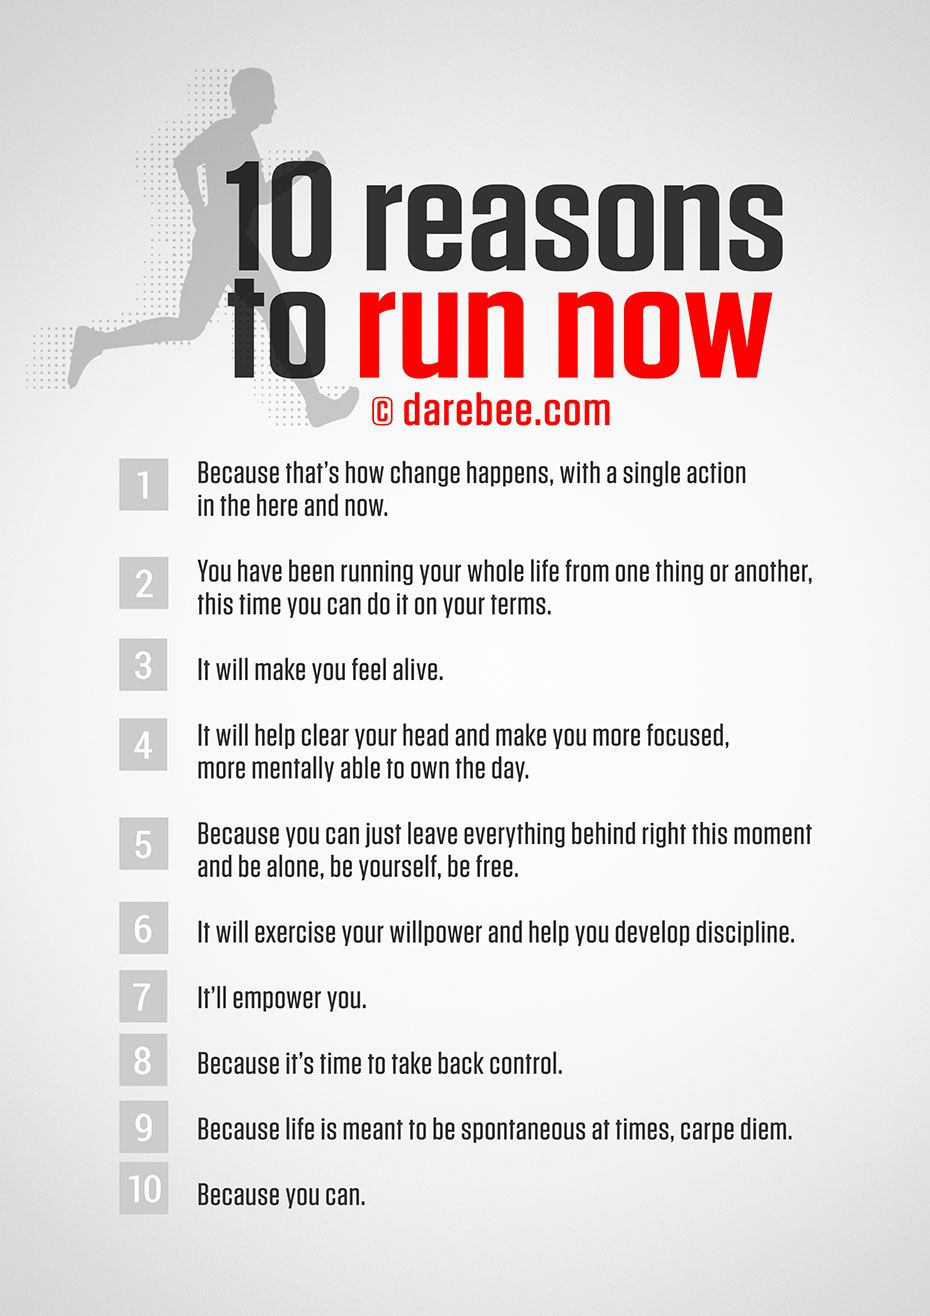 love it! Reasons to run now